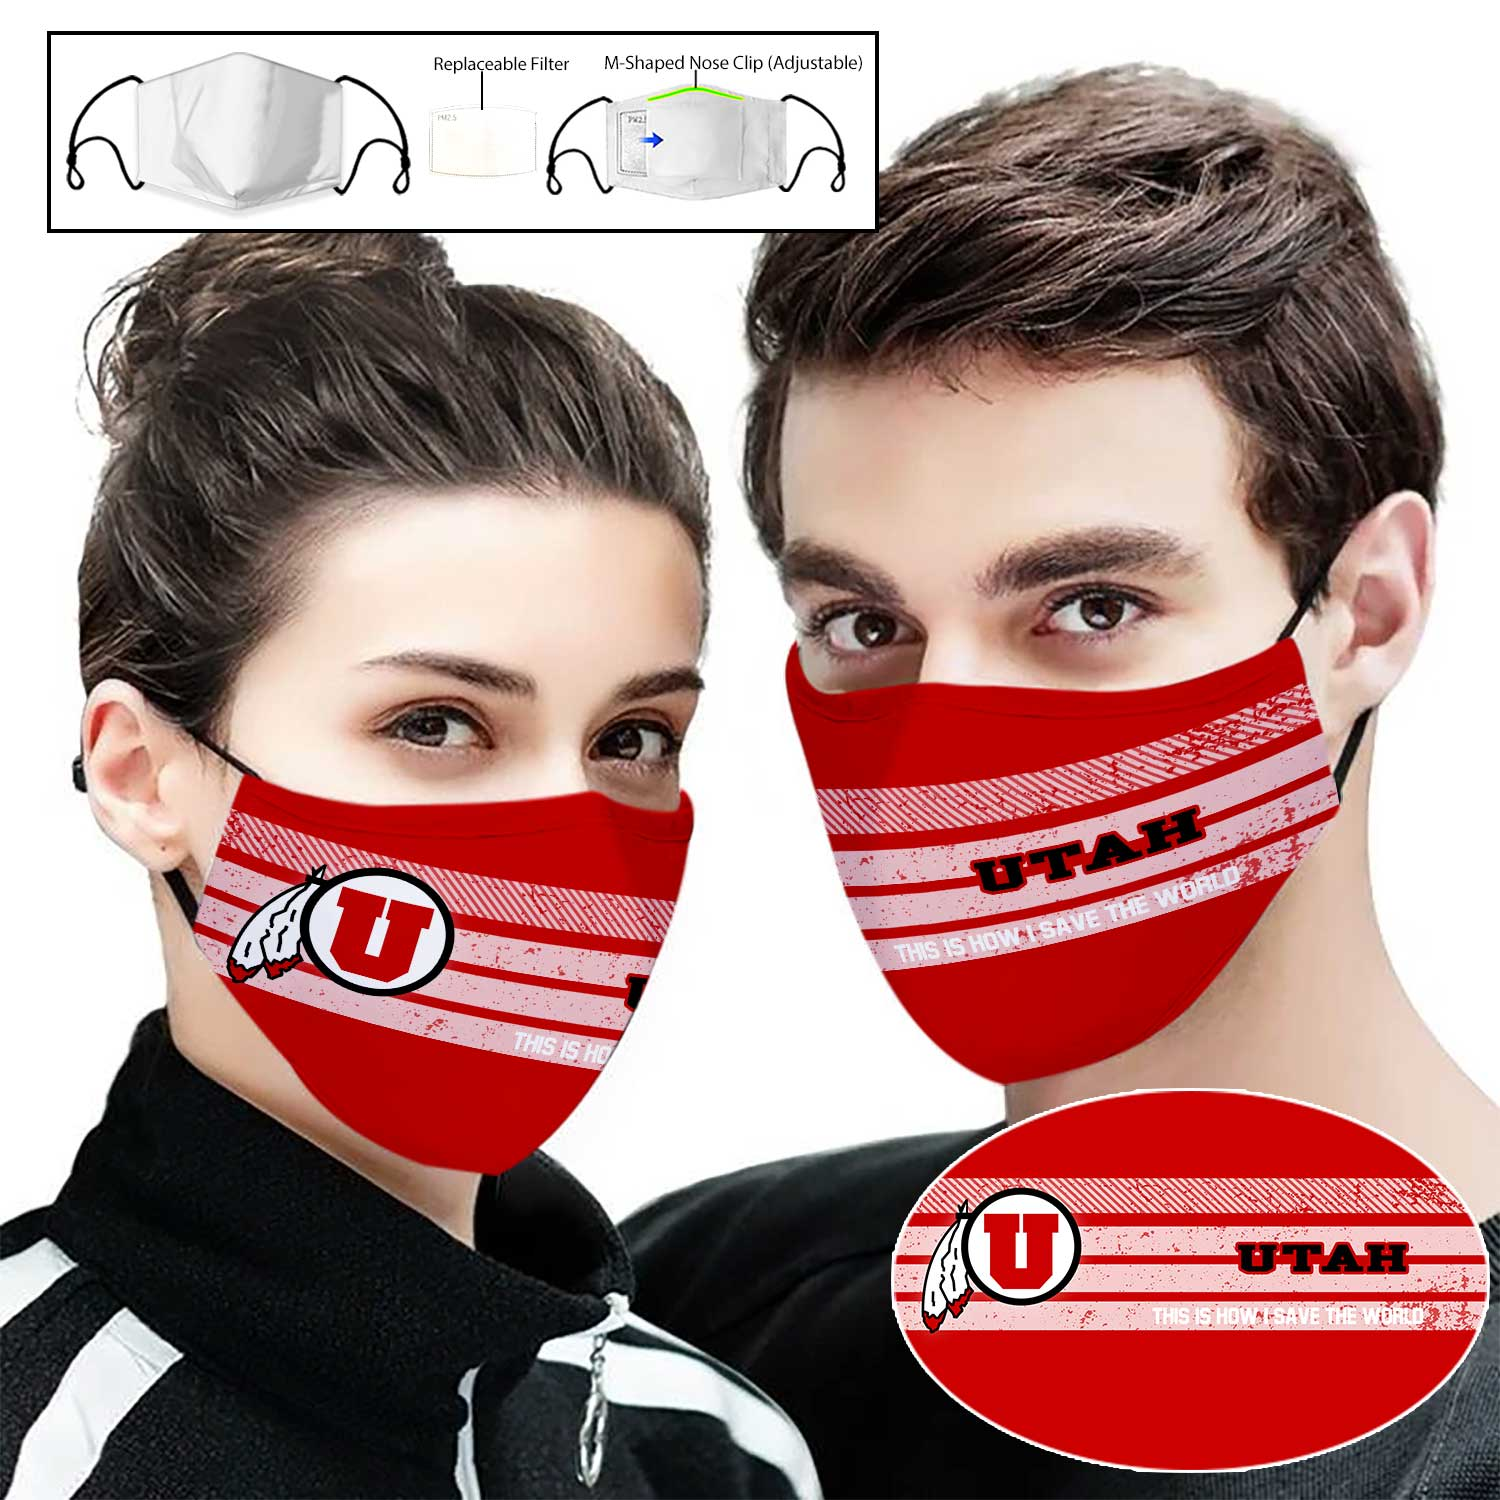 Utah utes this is how i save the world full printing face mask 2